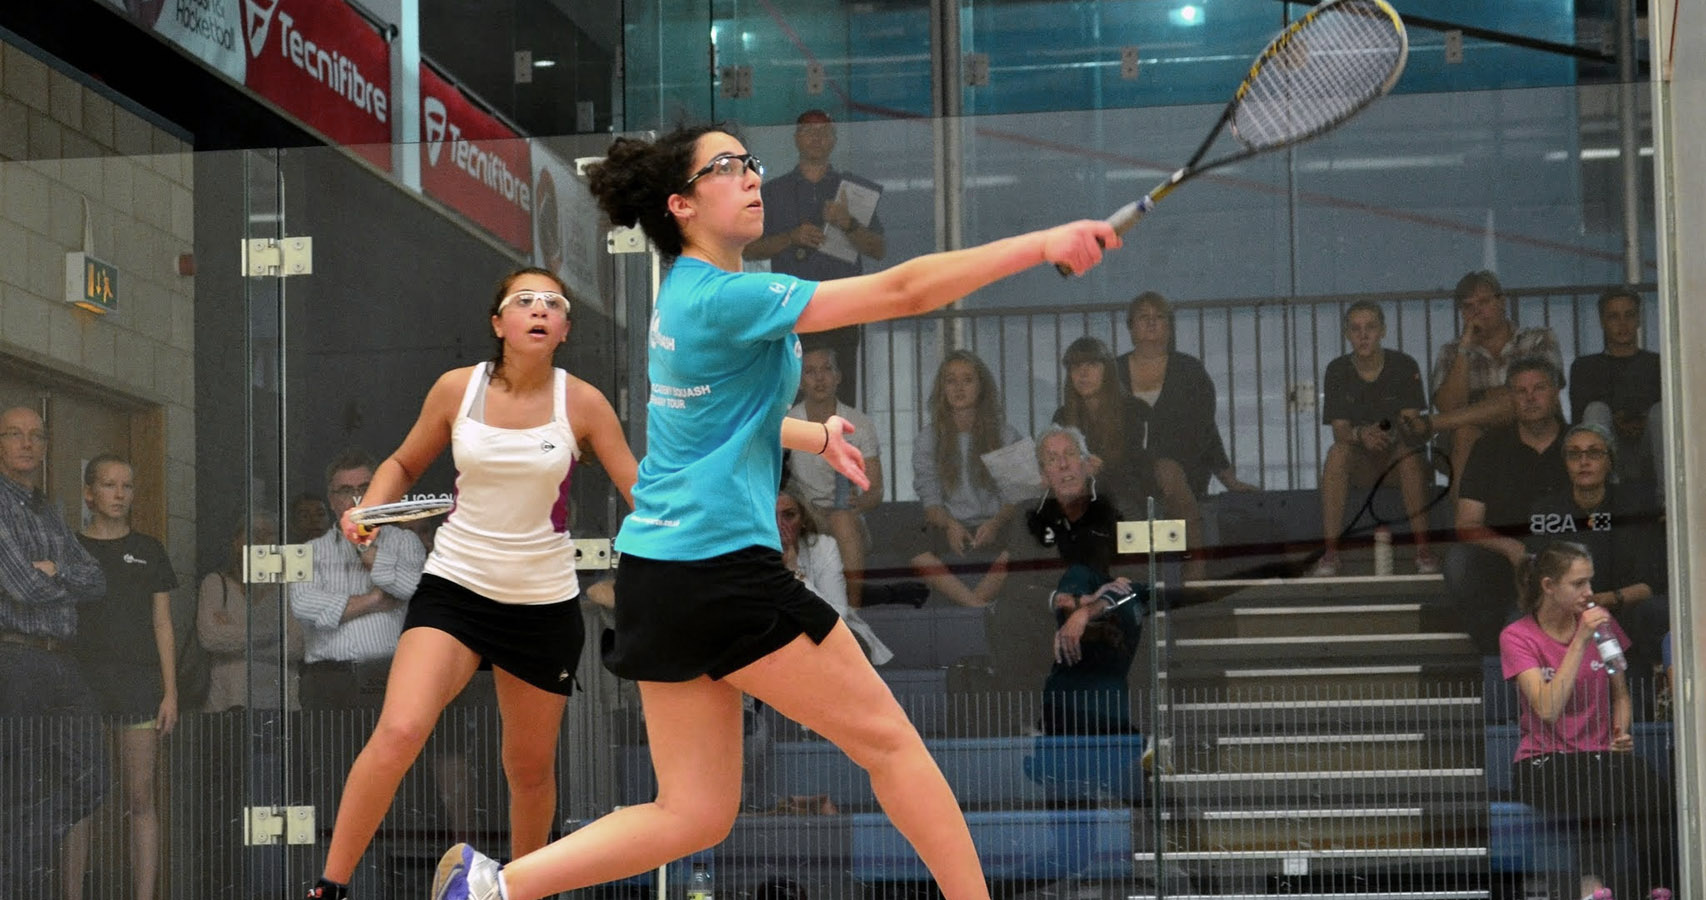 Two female squash players playing at the a county tournament